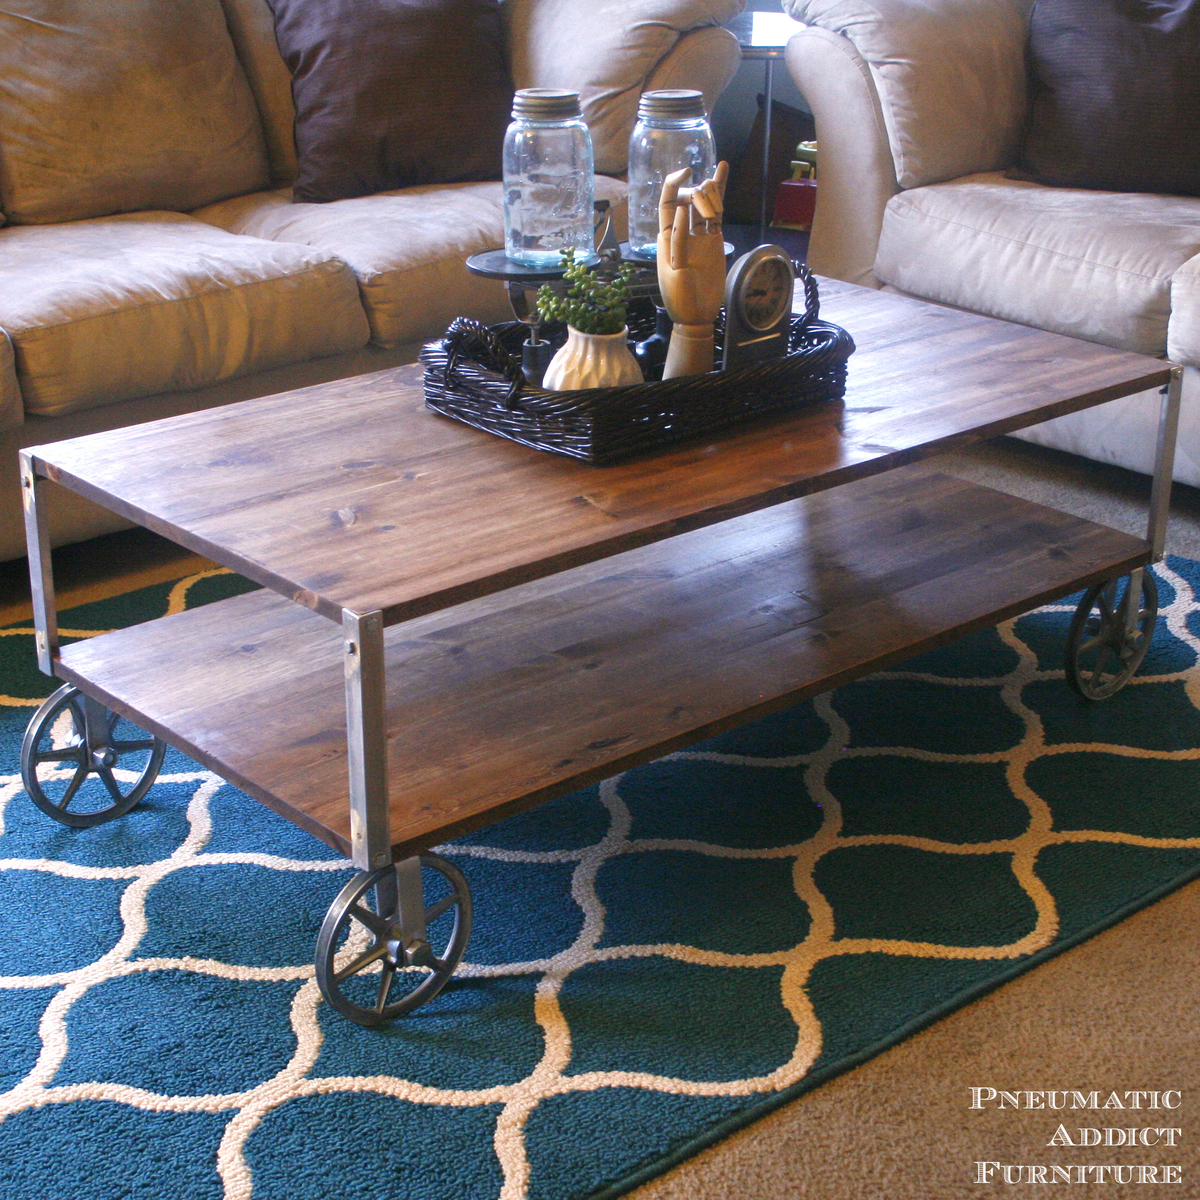 Build Industrial Coffee Table: Easy Industrial Coffee Table - DIY Projects